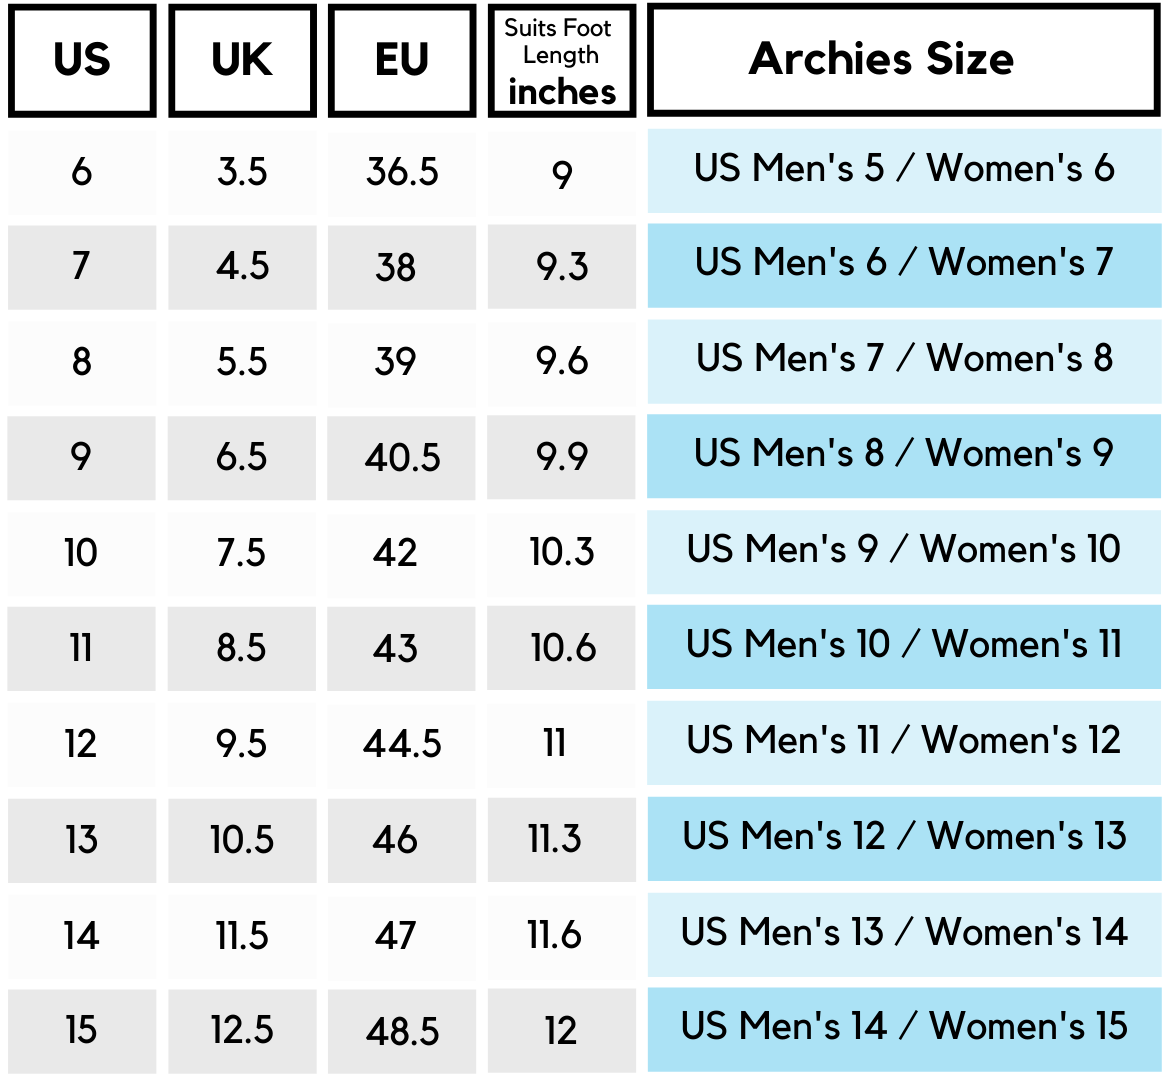 US Women's Archies Size Guide